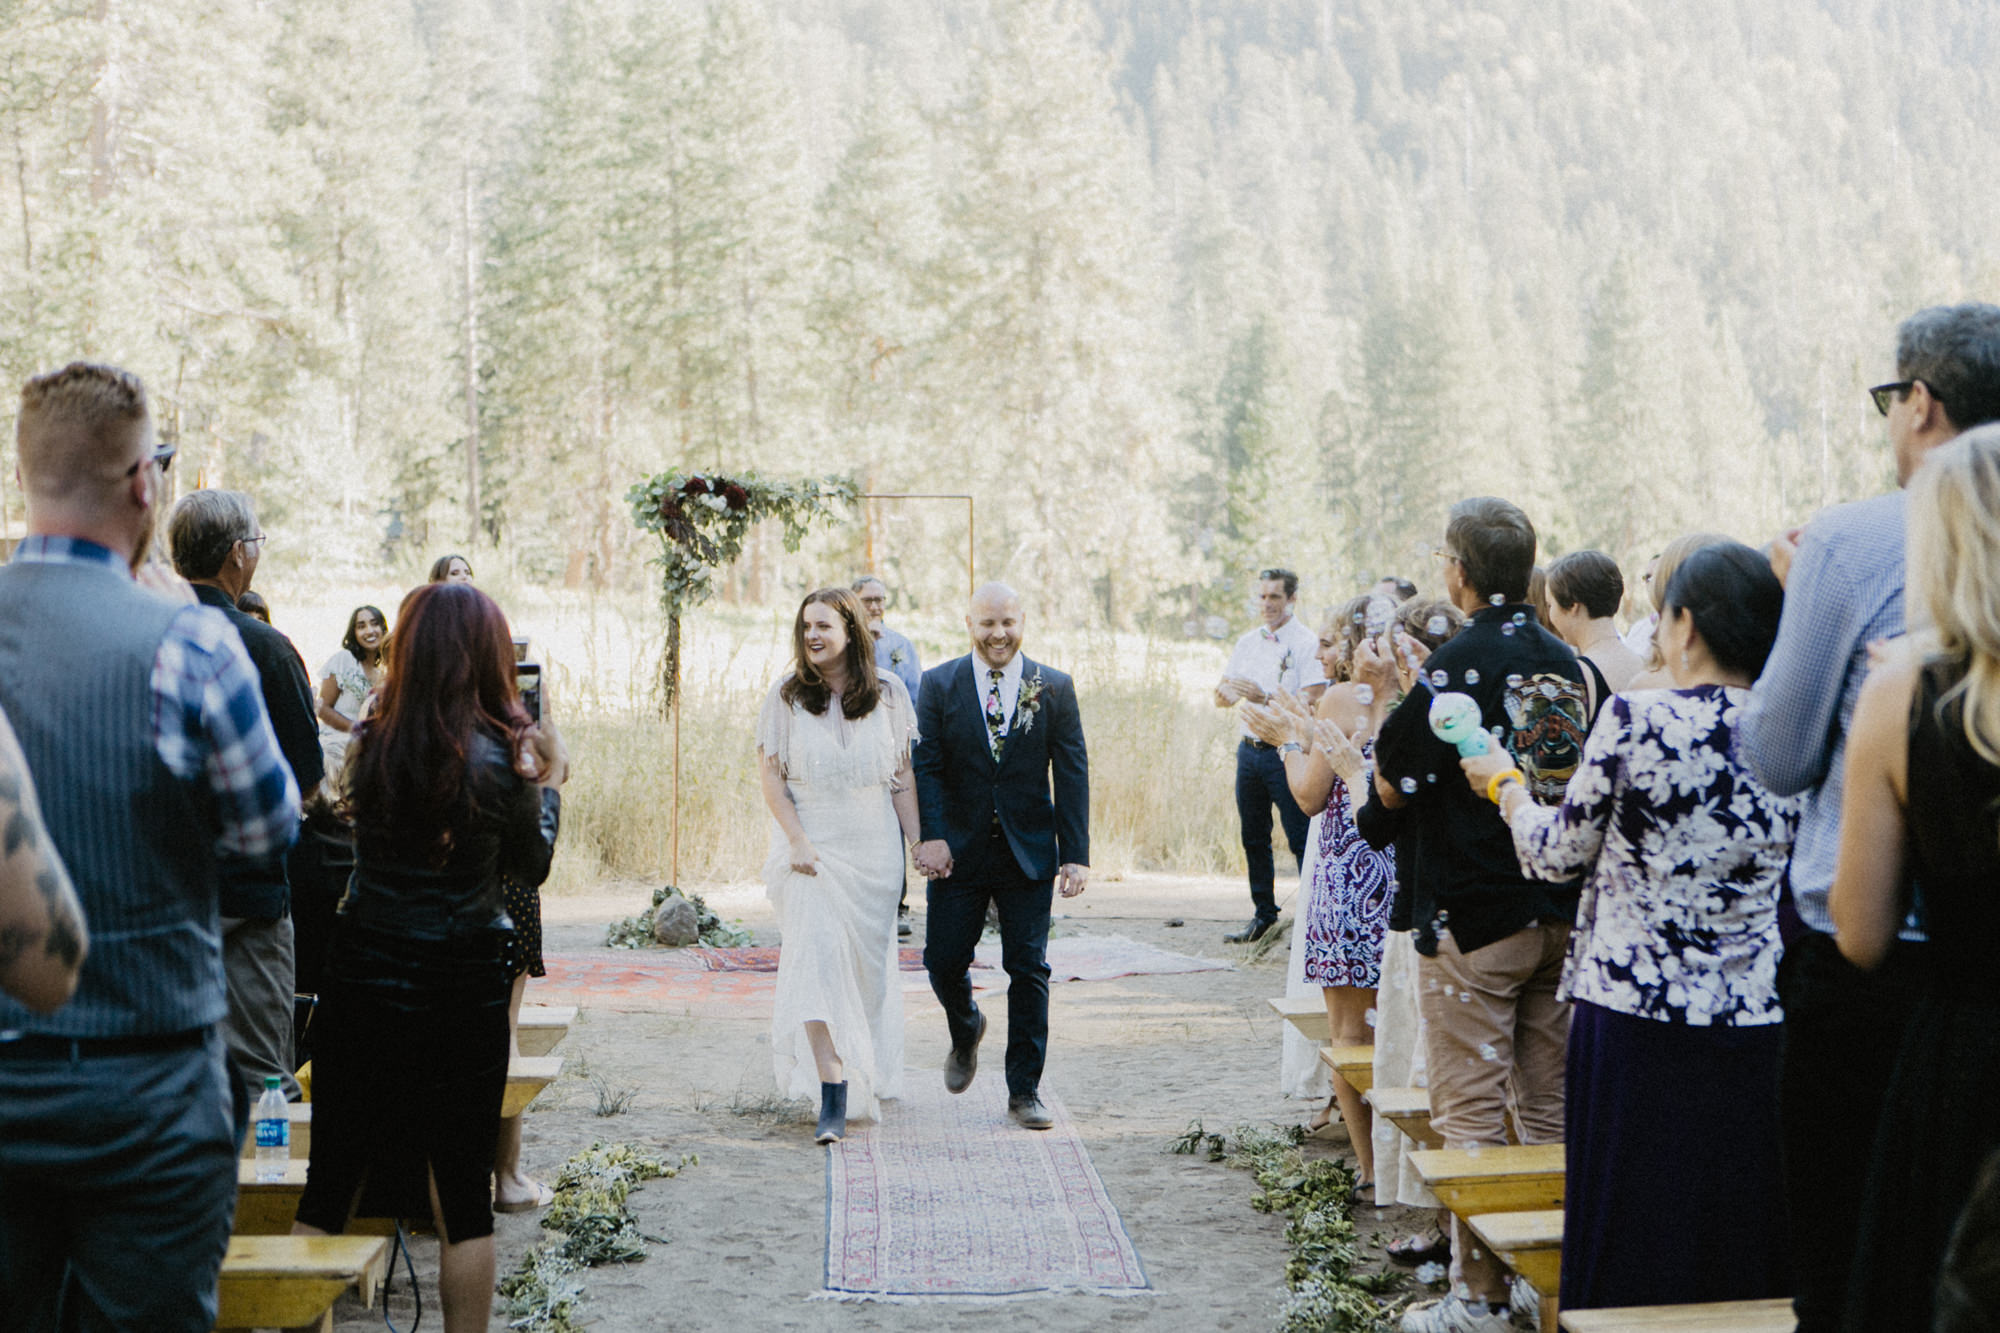 YMCA camp round meadow wedding -81.jpg